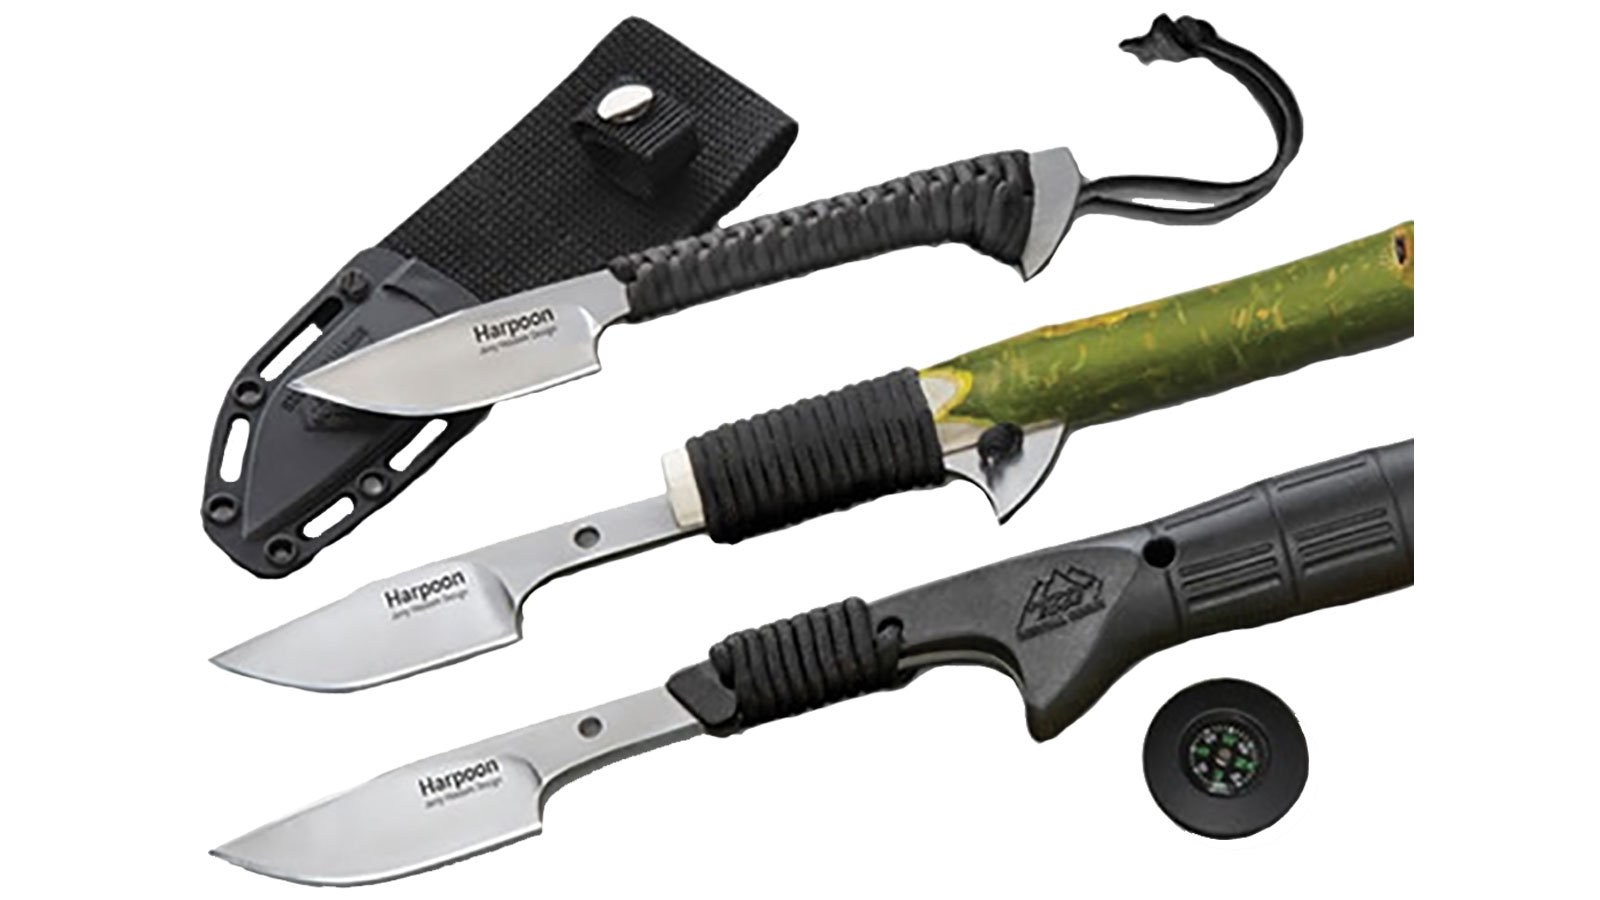 Outdoor Edge Harpoon Fixed-Blade Knife, 2.9 quot Blade